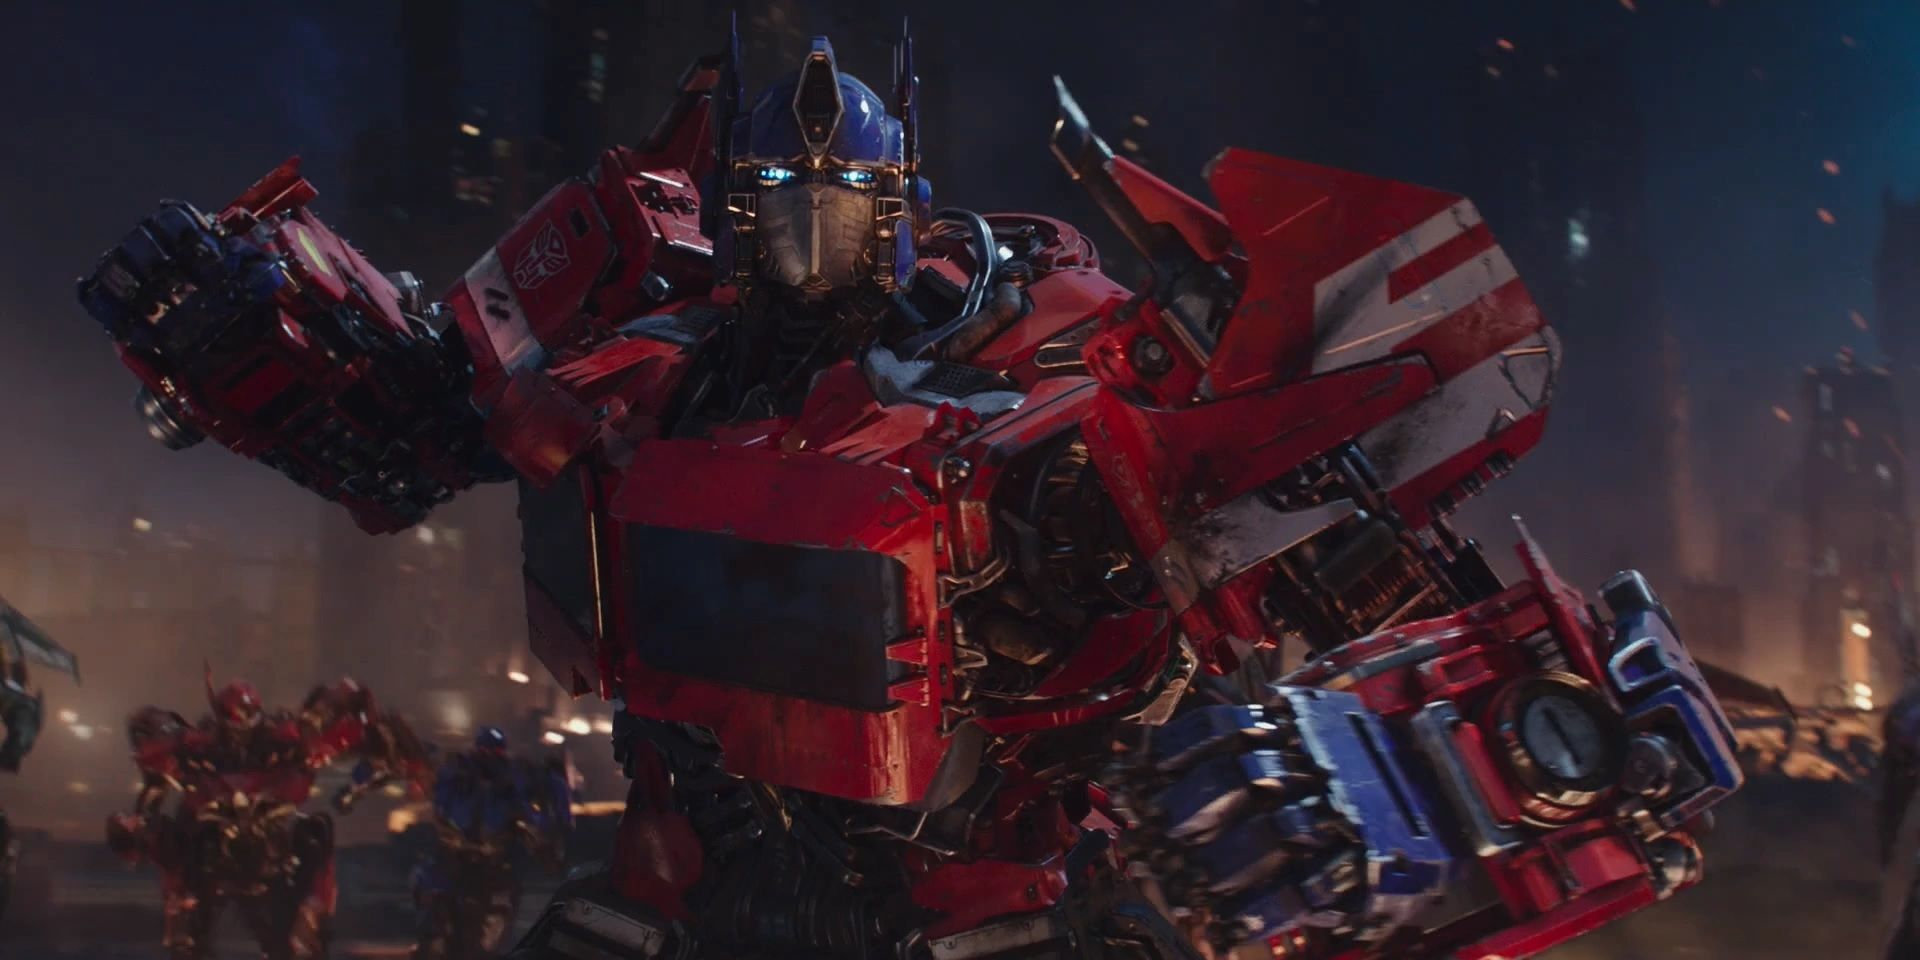 G1 Optimus Prime Confirmed For Transformers: Rise of the Beasts